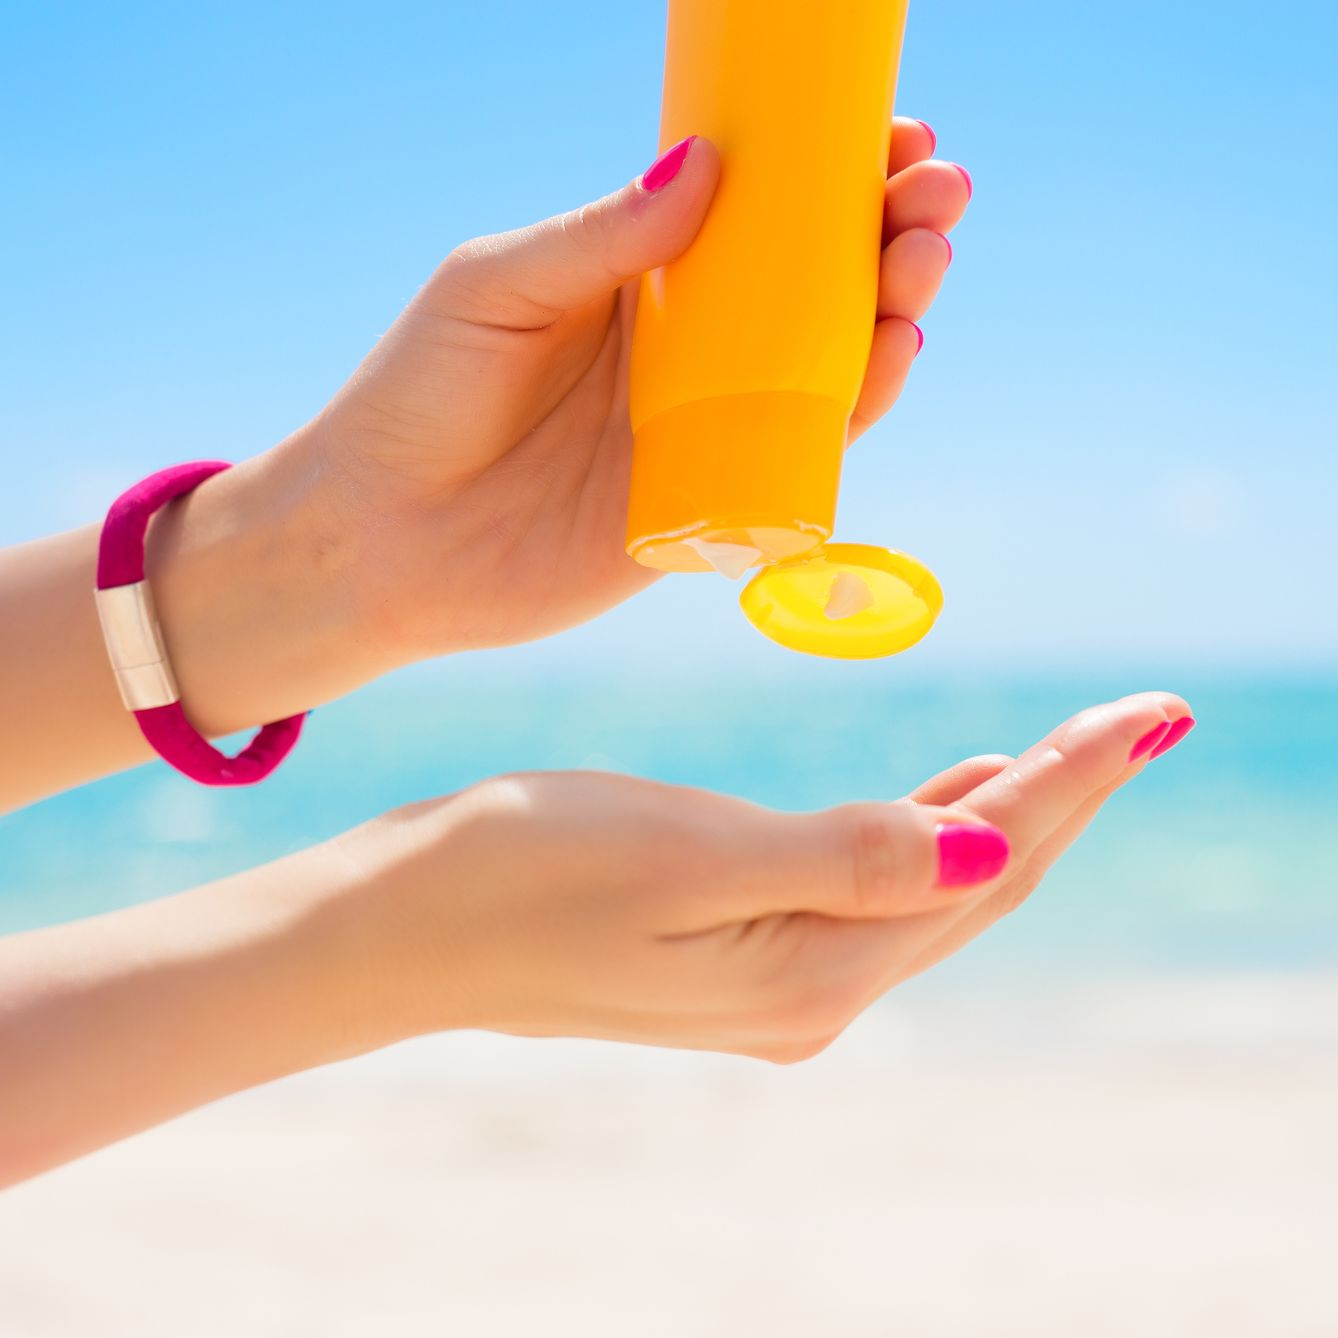 Is Oxybenzone In Sunscreen Dangerous? Here's How It May Impact Your Health